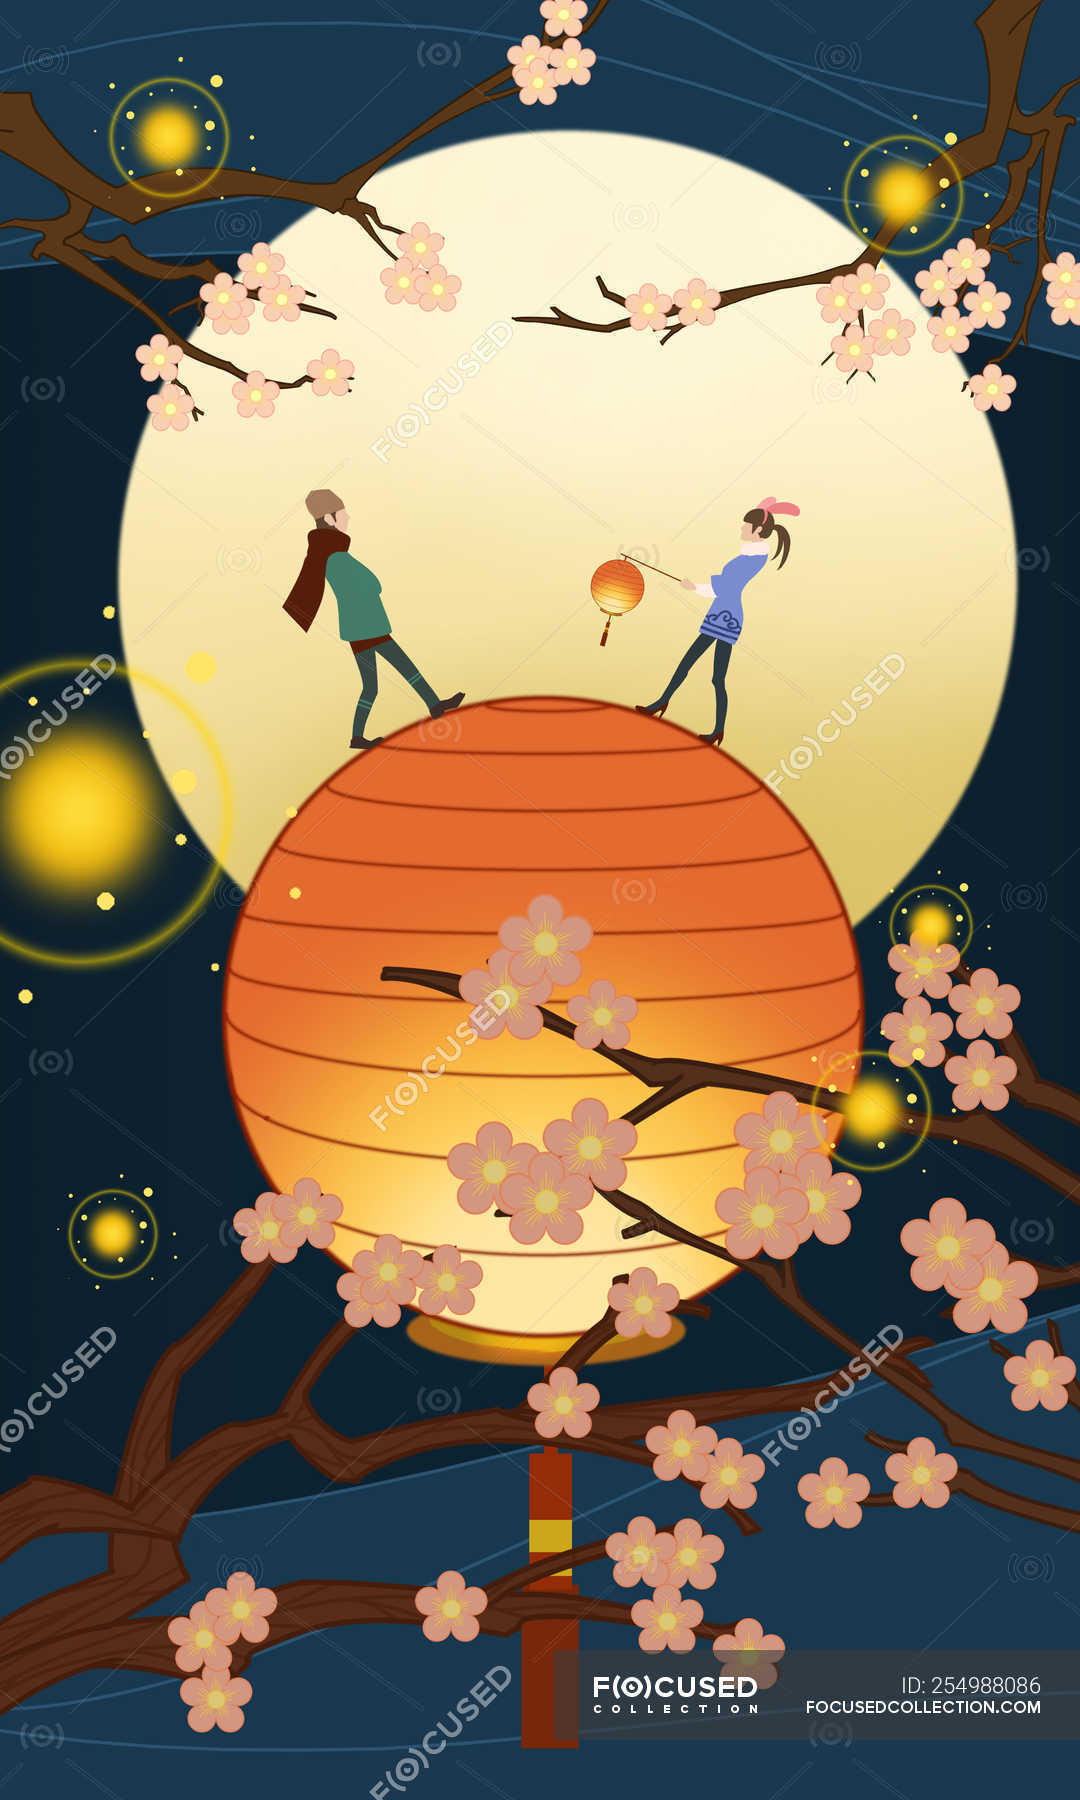 Beautiful Creative Illustration Of Couple On Illuminated Lantern And Blossoming Tree Branches Lantern Festival Concept Drawing Hand Drawing Stock Photo 254988086